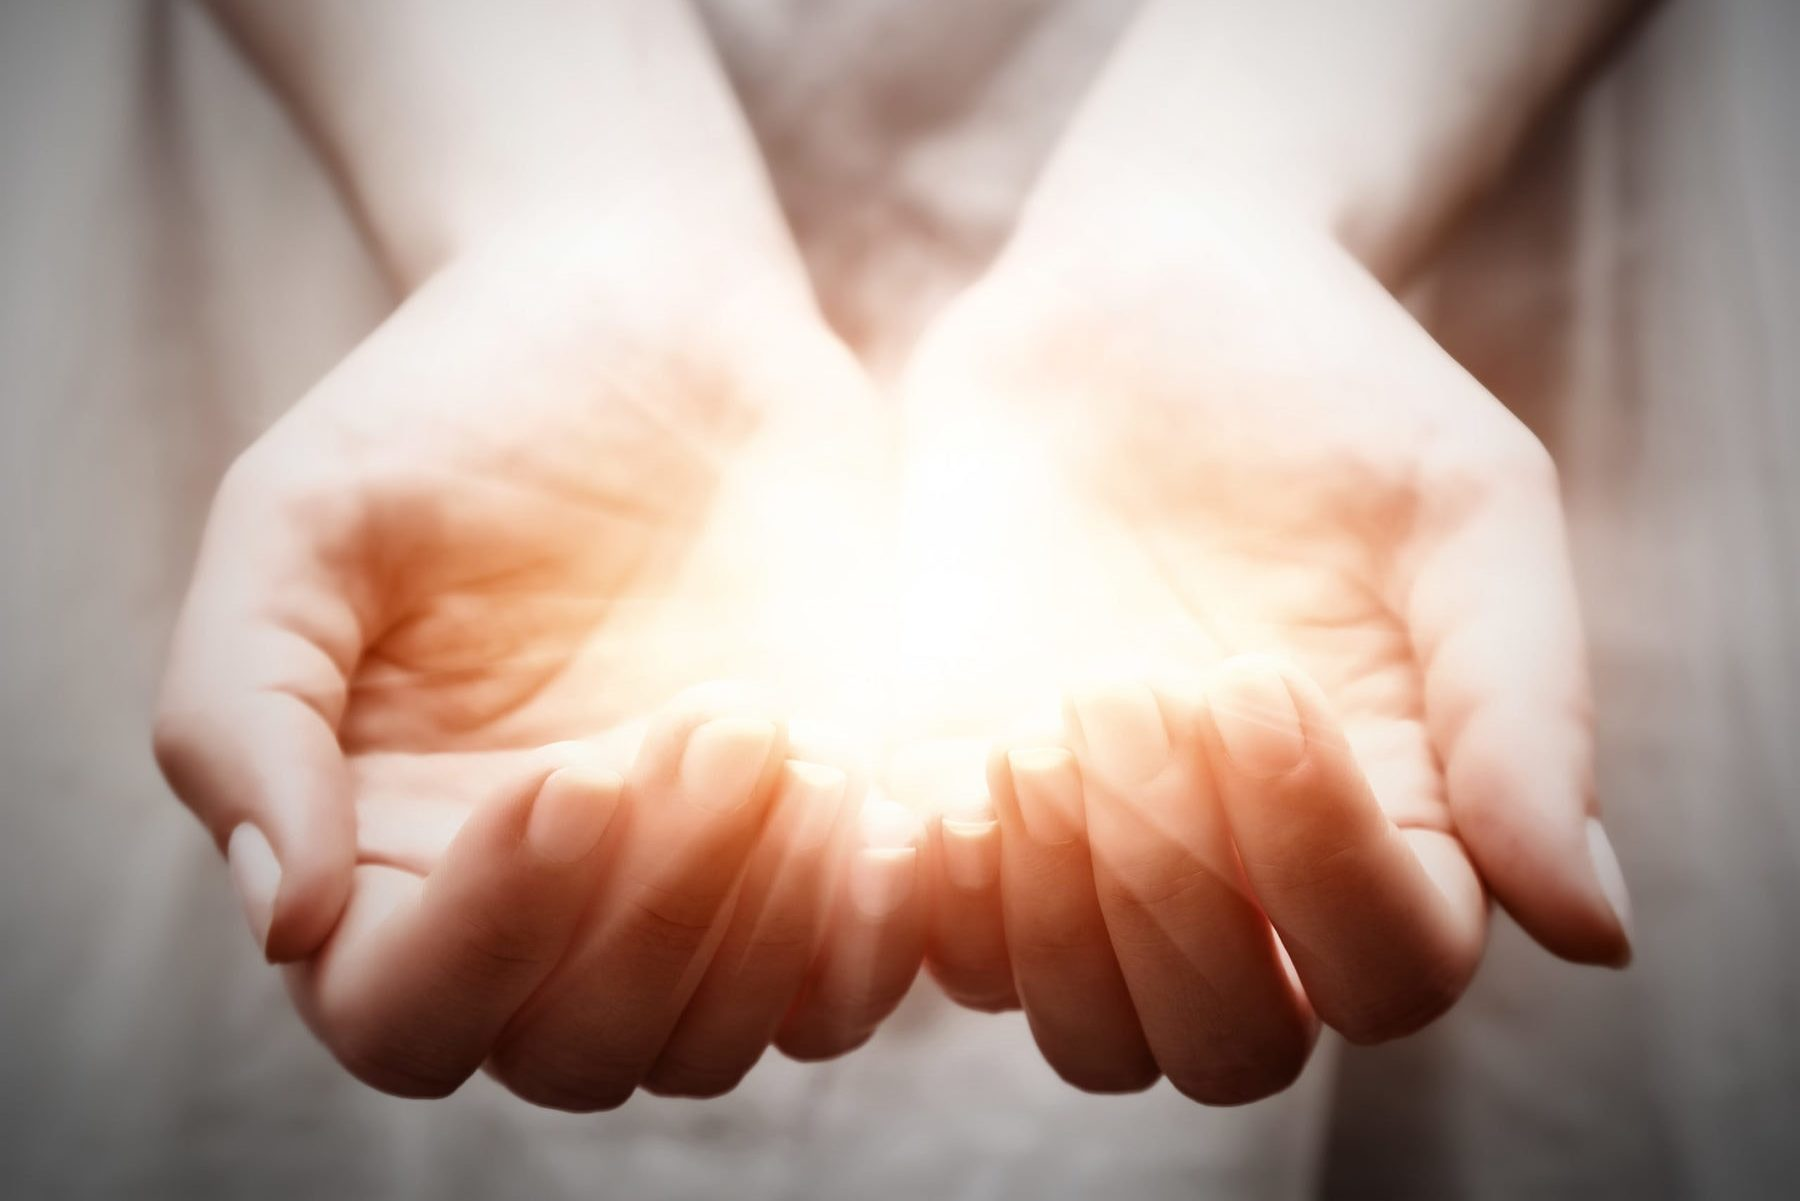 Reiki can feel like a gentle glow